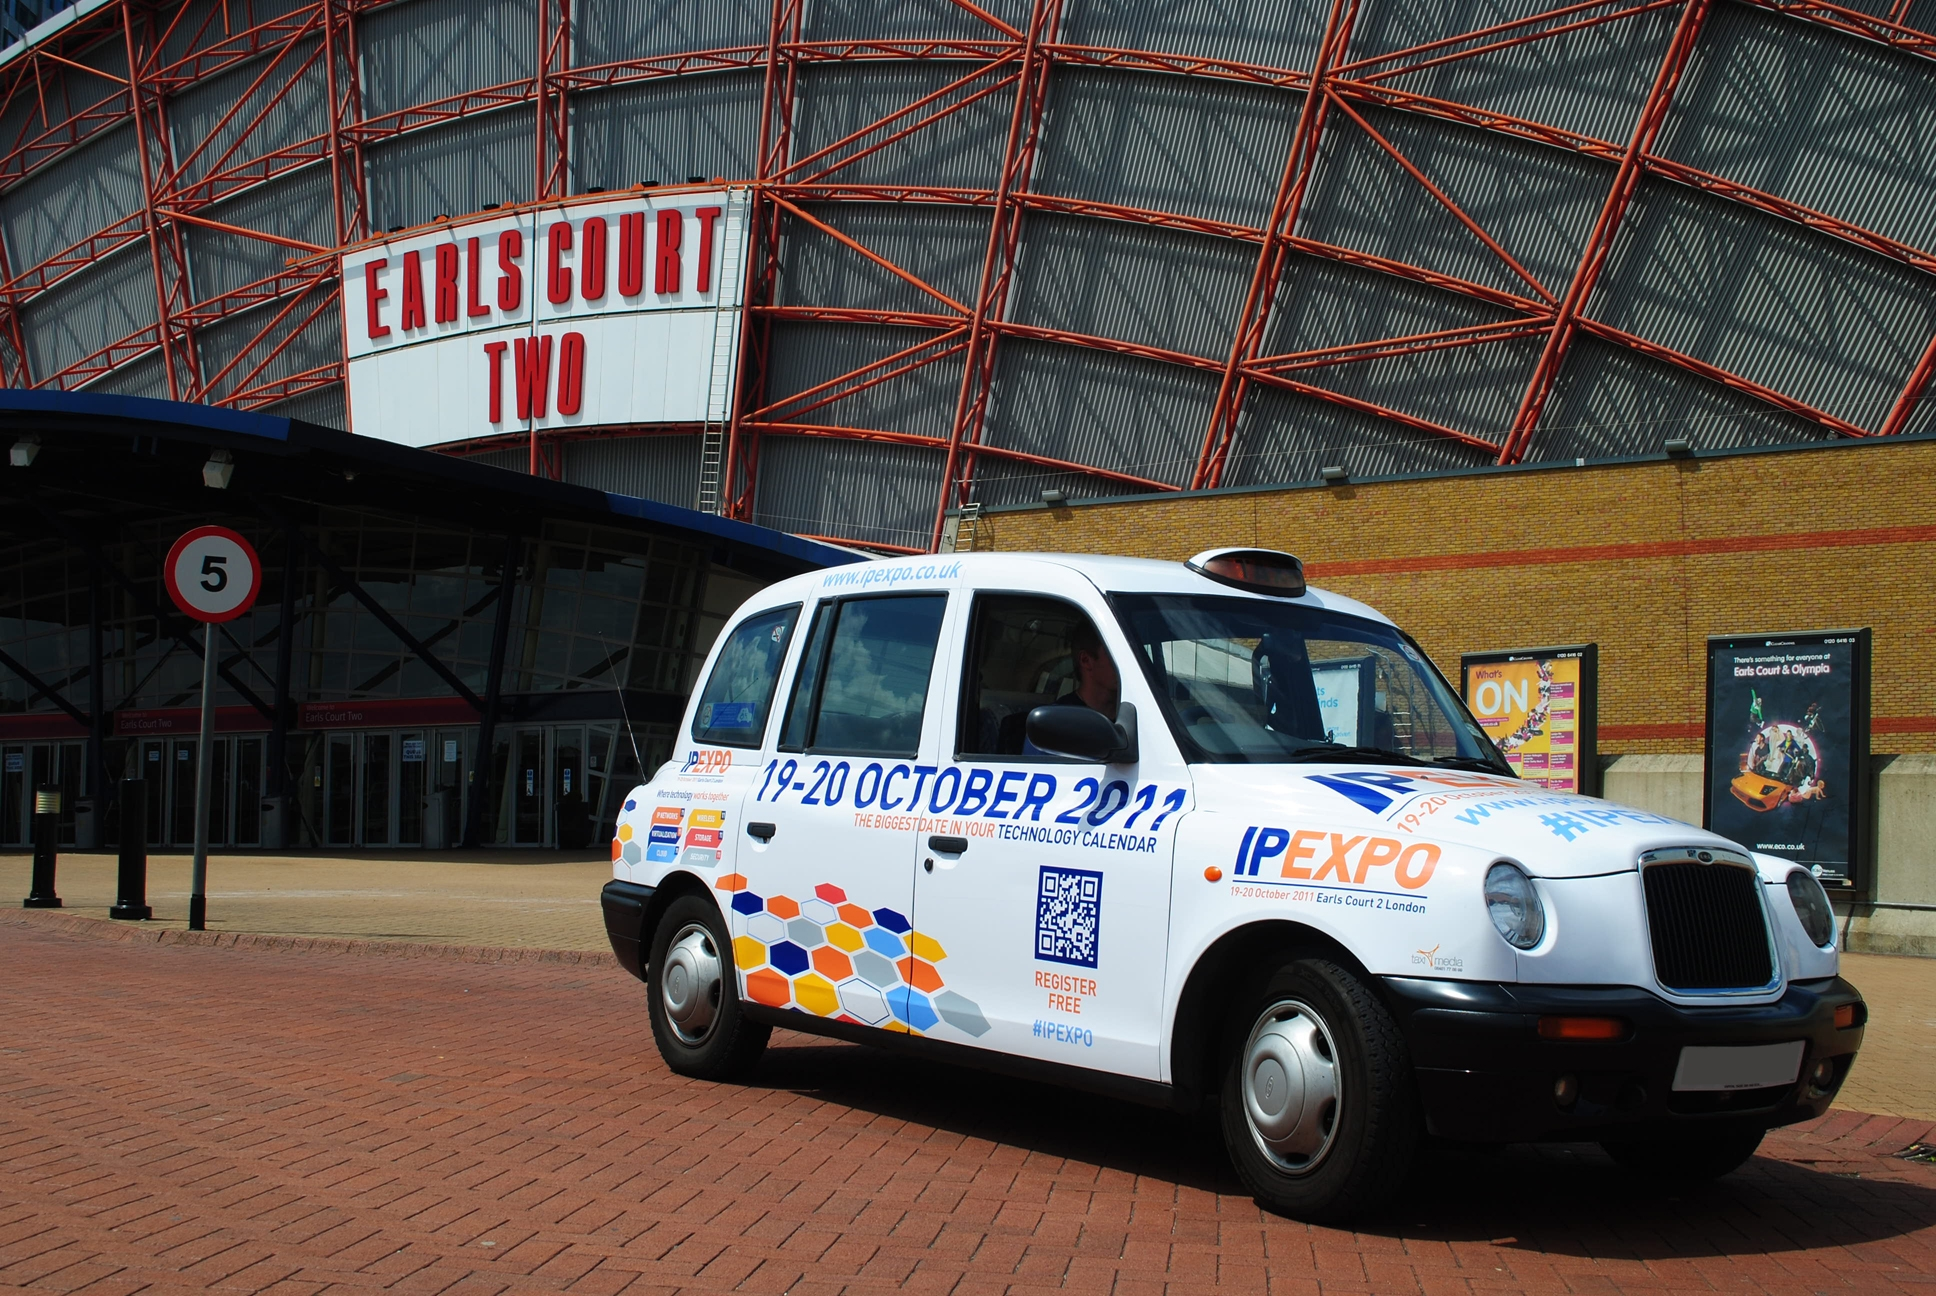 IP Expo taxi